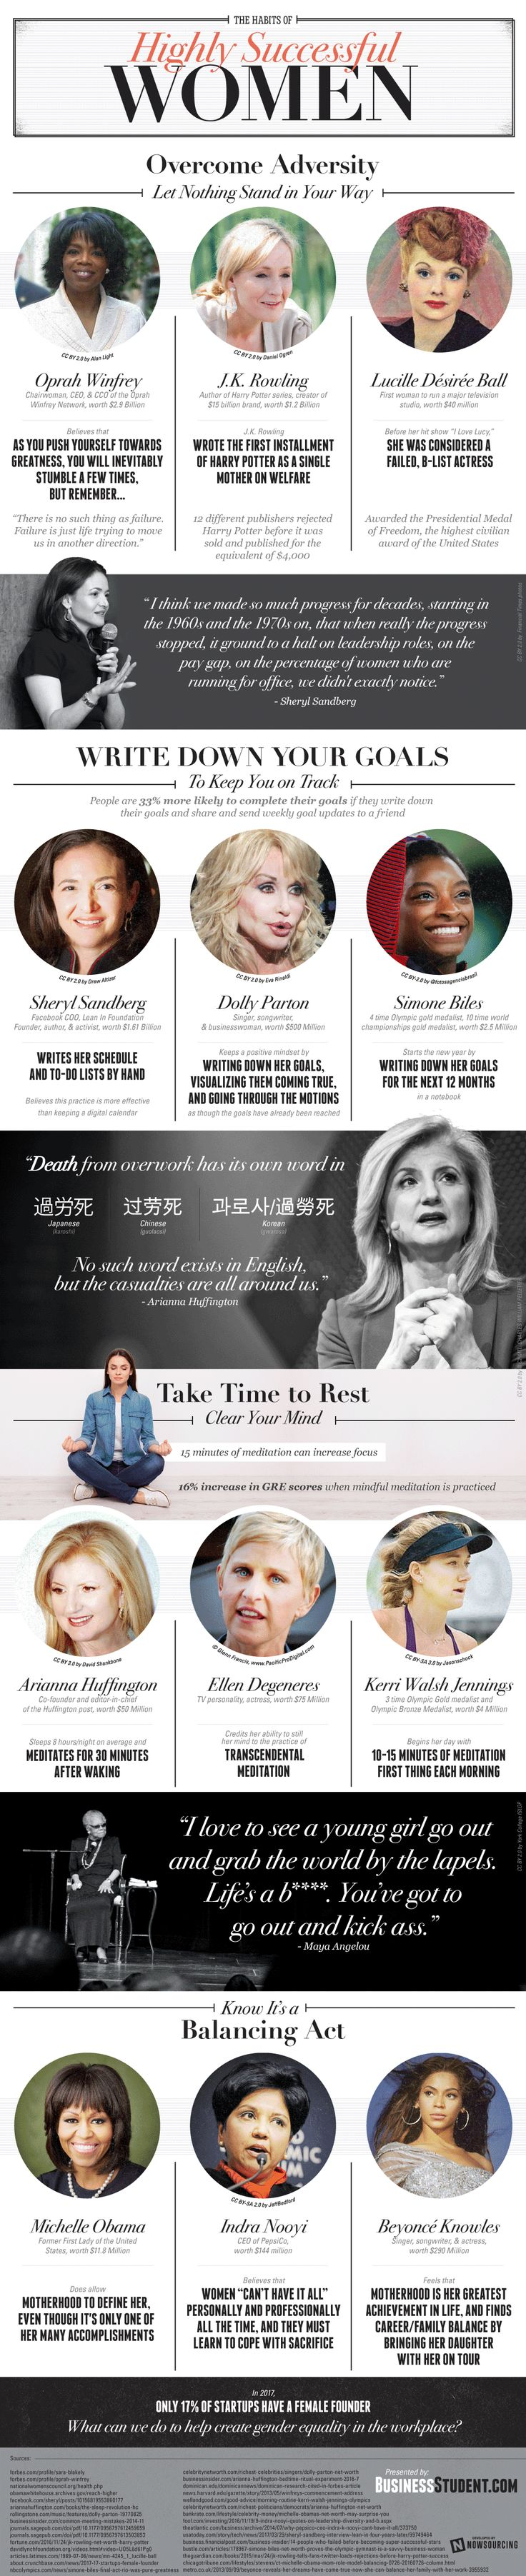 Habits of Highly Successful Women - #infographic